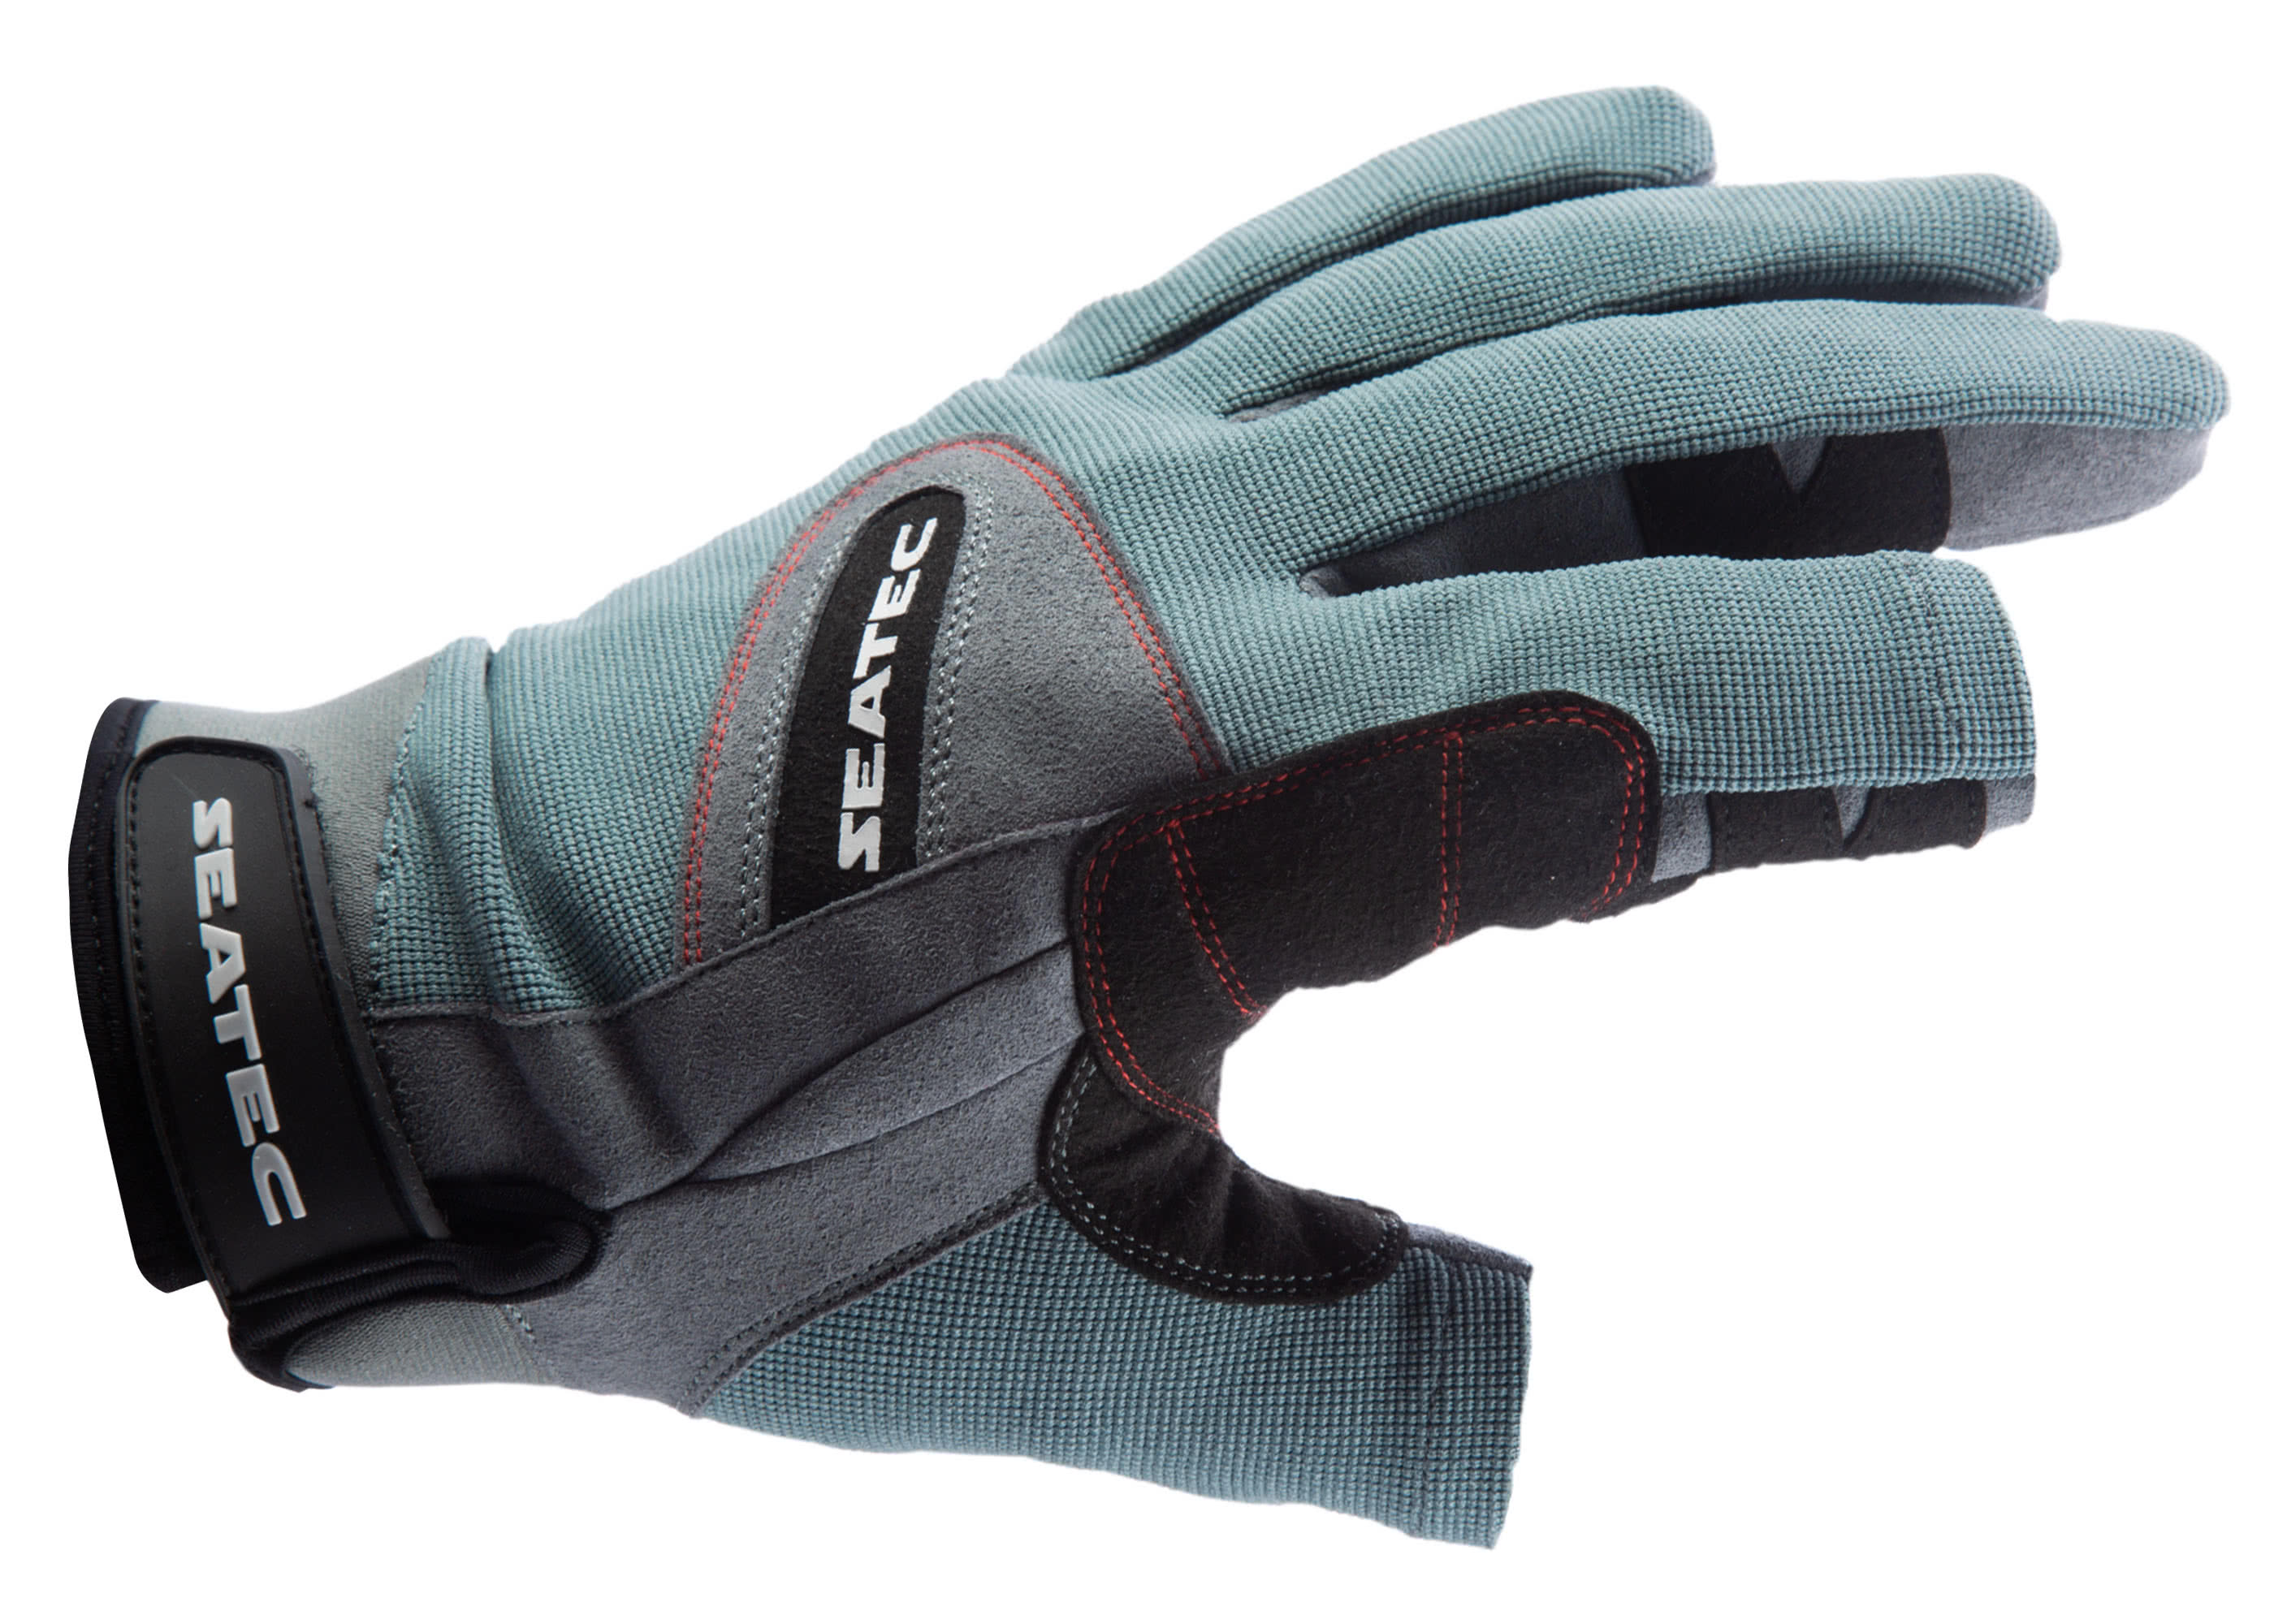 RACE Professional Sailing Glove / thumb and index finger ope